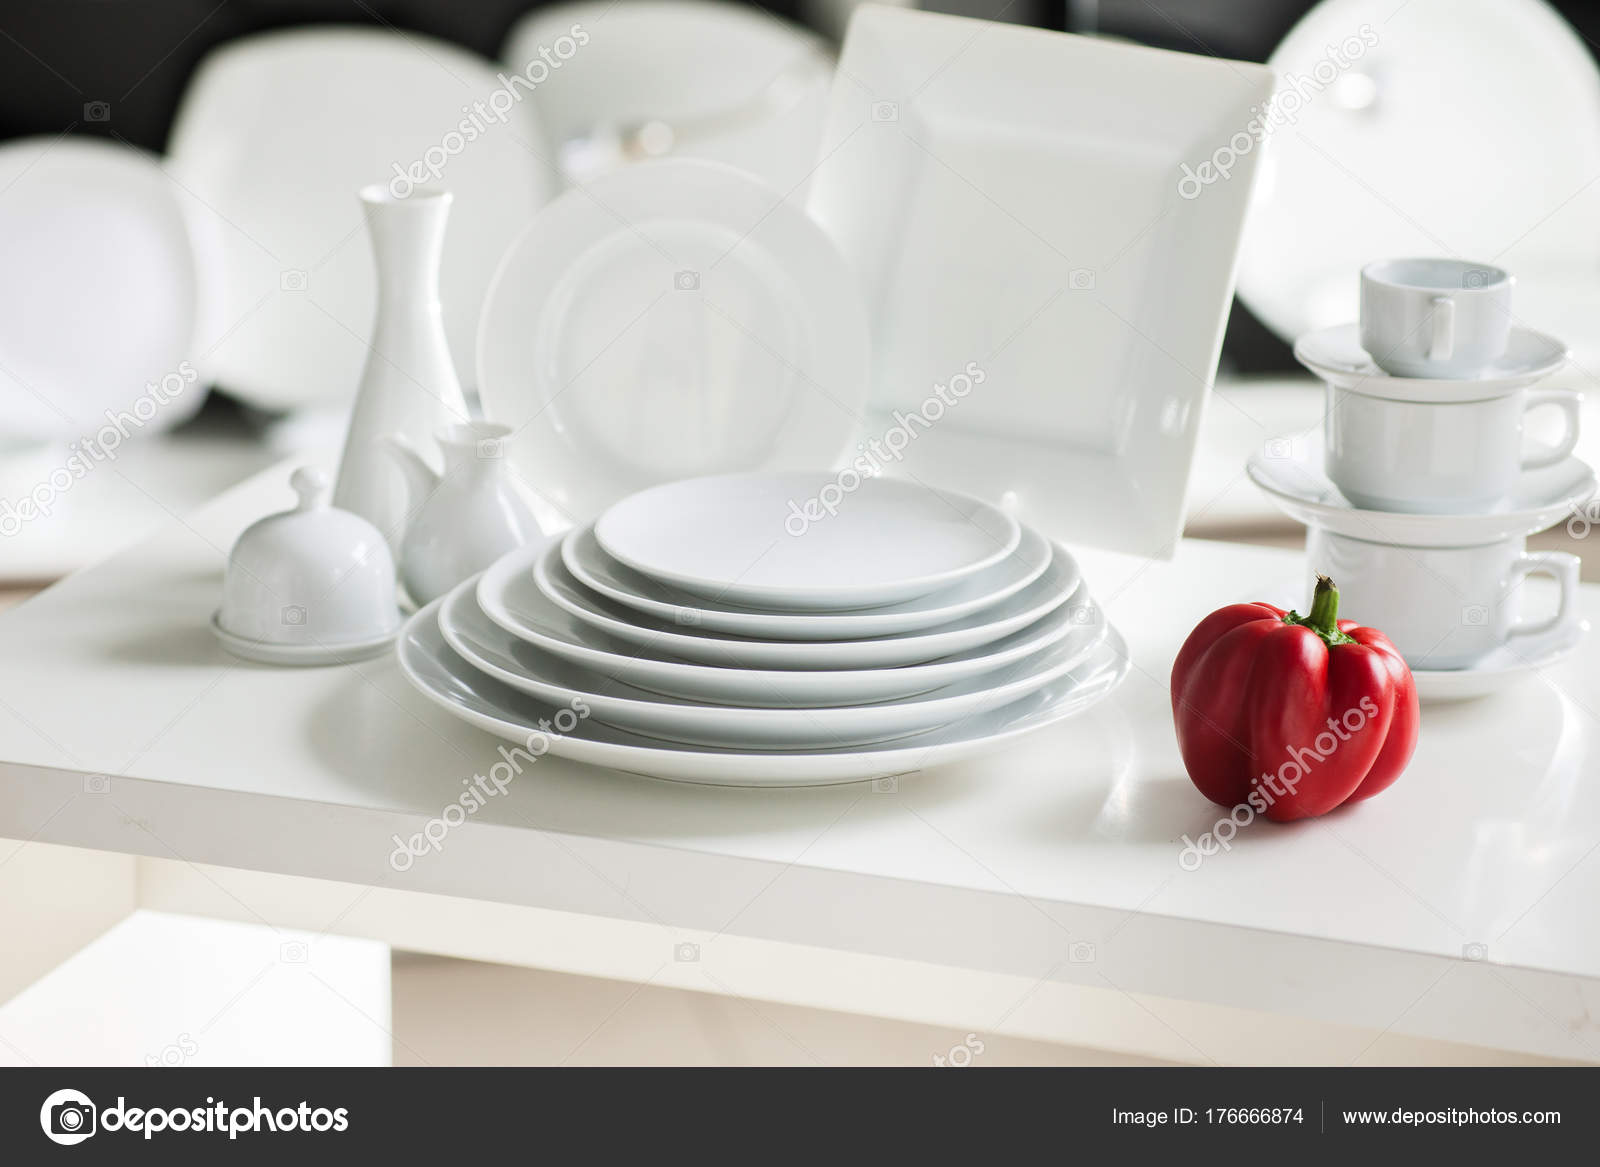 Hotel restaurant white dishes assortment. Stylish crockery set. Luxury and sophistication concept u2014 Photo by golubovystock & white tableware stylish luxury crockery u2014 Stock Photo ...